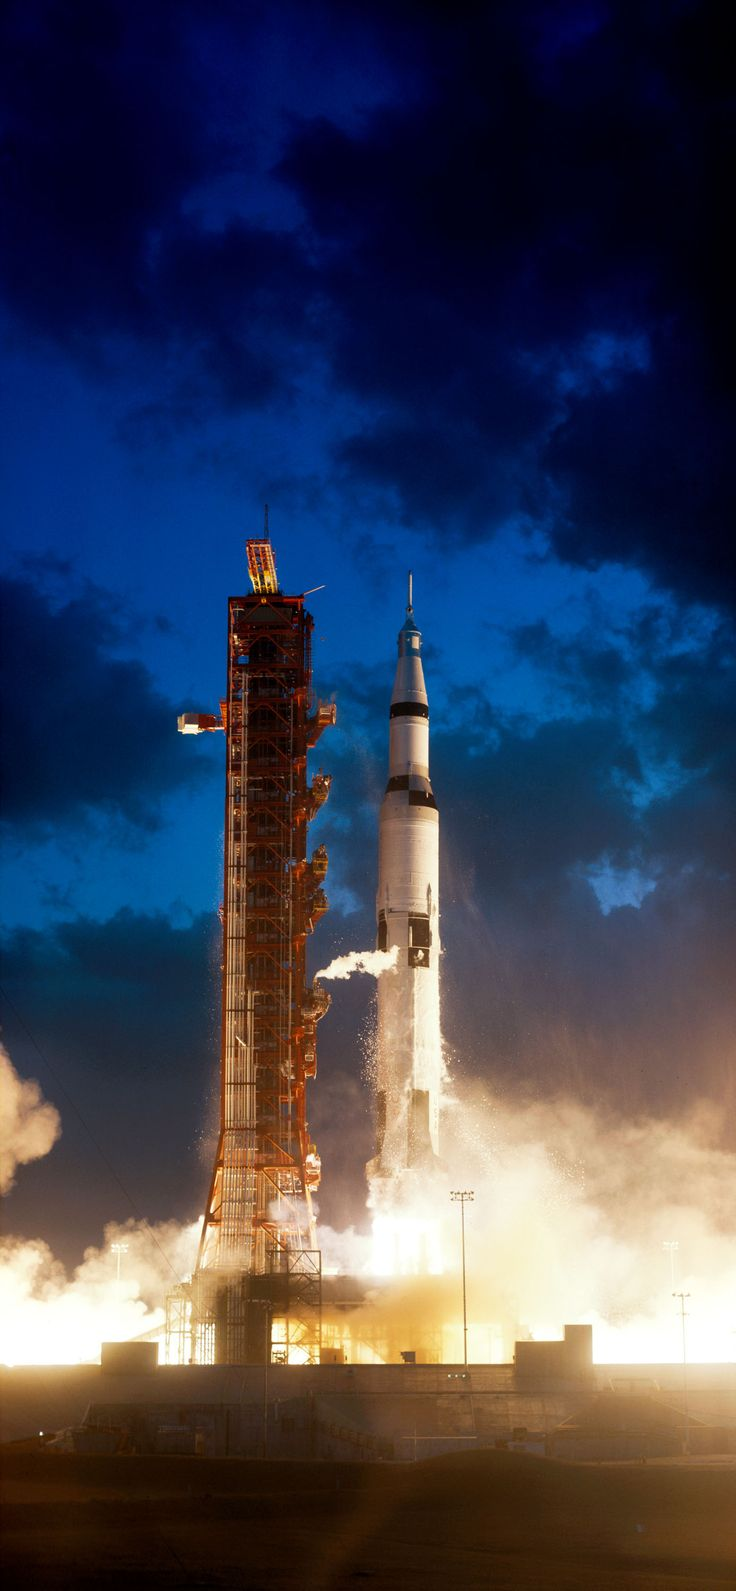 S67-50903 (9 Nov. 1967) --- The Apollo 4 (Spacecraft 017/Saturn 501) space mission was launched from Pad A, Launch Complex 39, Kennedy Space Center, Florida. The liftoff of the huge 363-feet tall Apollo/Saturn V space vehicle was at 7:00:01 a.m. (EST), Nov. 9, 1967.